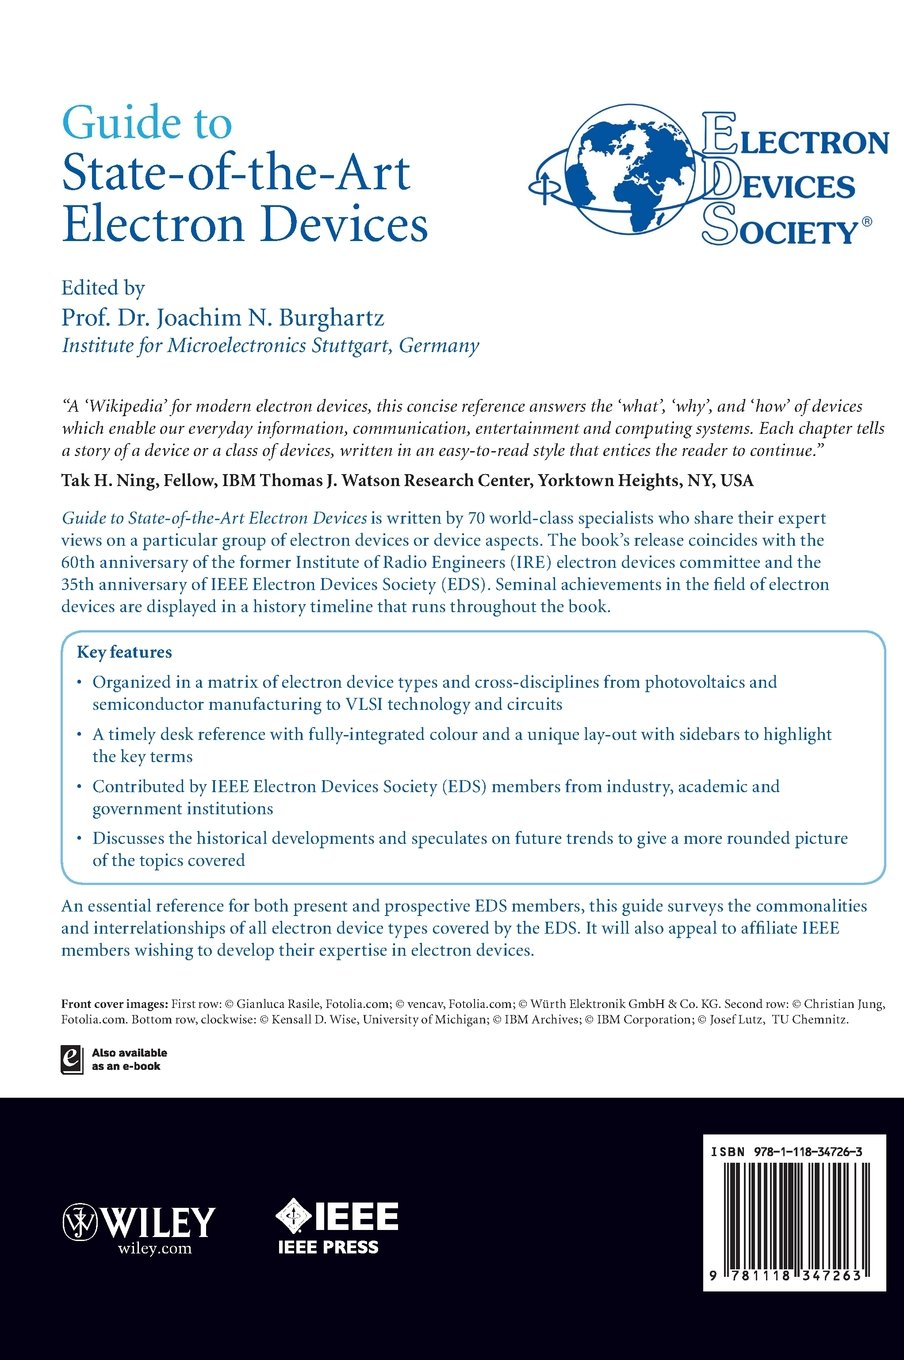 Read PDF Guide to State-of-the-Art Electron Devices (Wiley